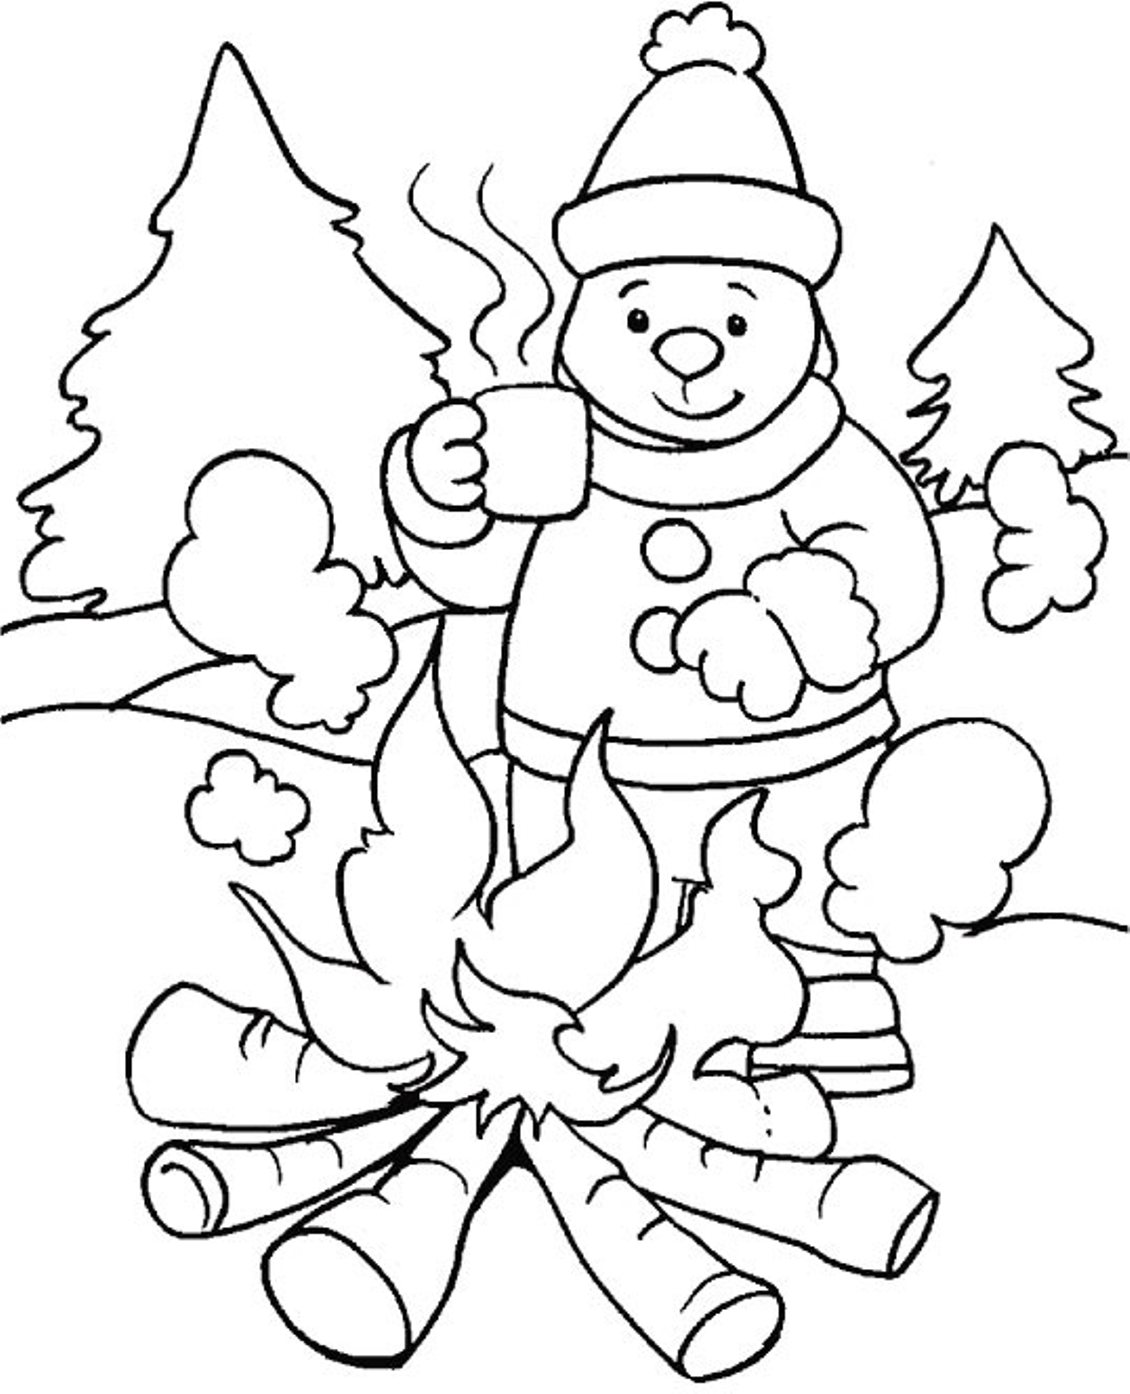 photograph regarding Free Printable Winter Coloring Pages called Totally free Printable Winter season Coloring Internet pages For Young children